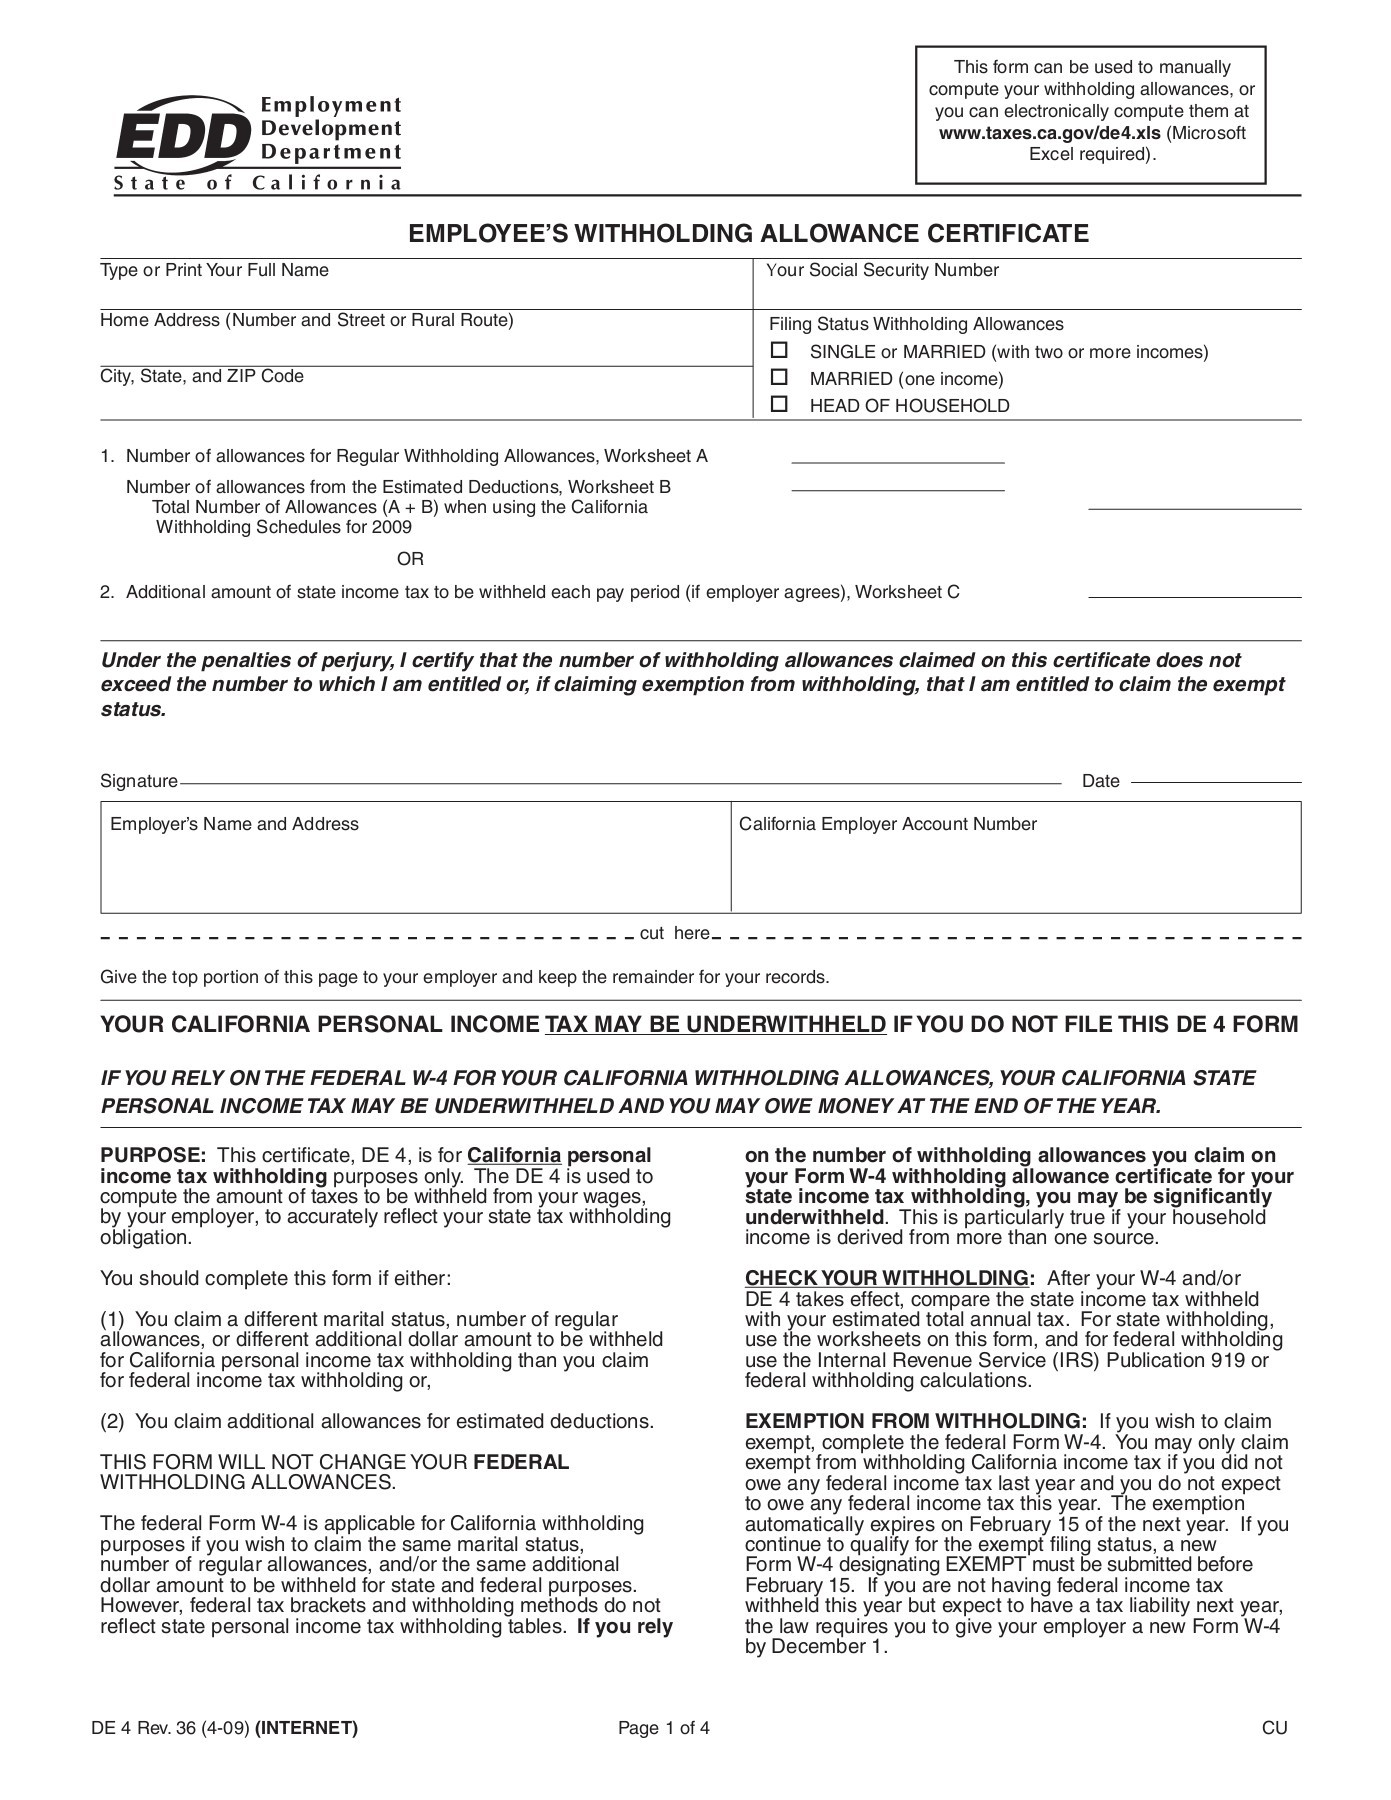 Personal Allowance Worksheet